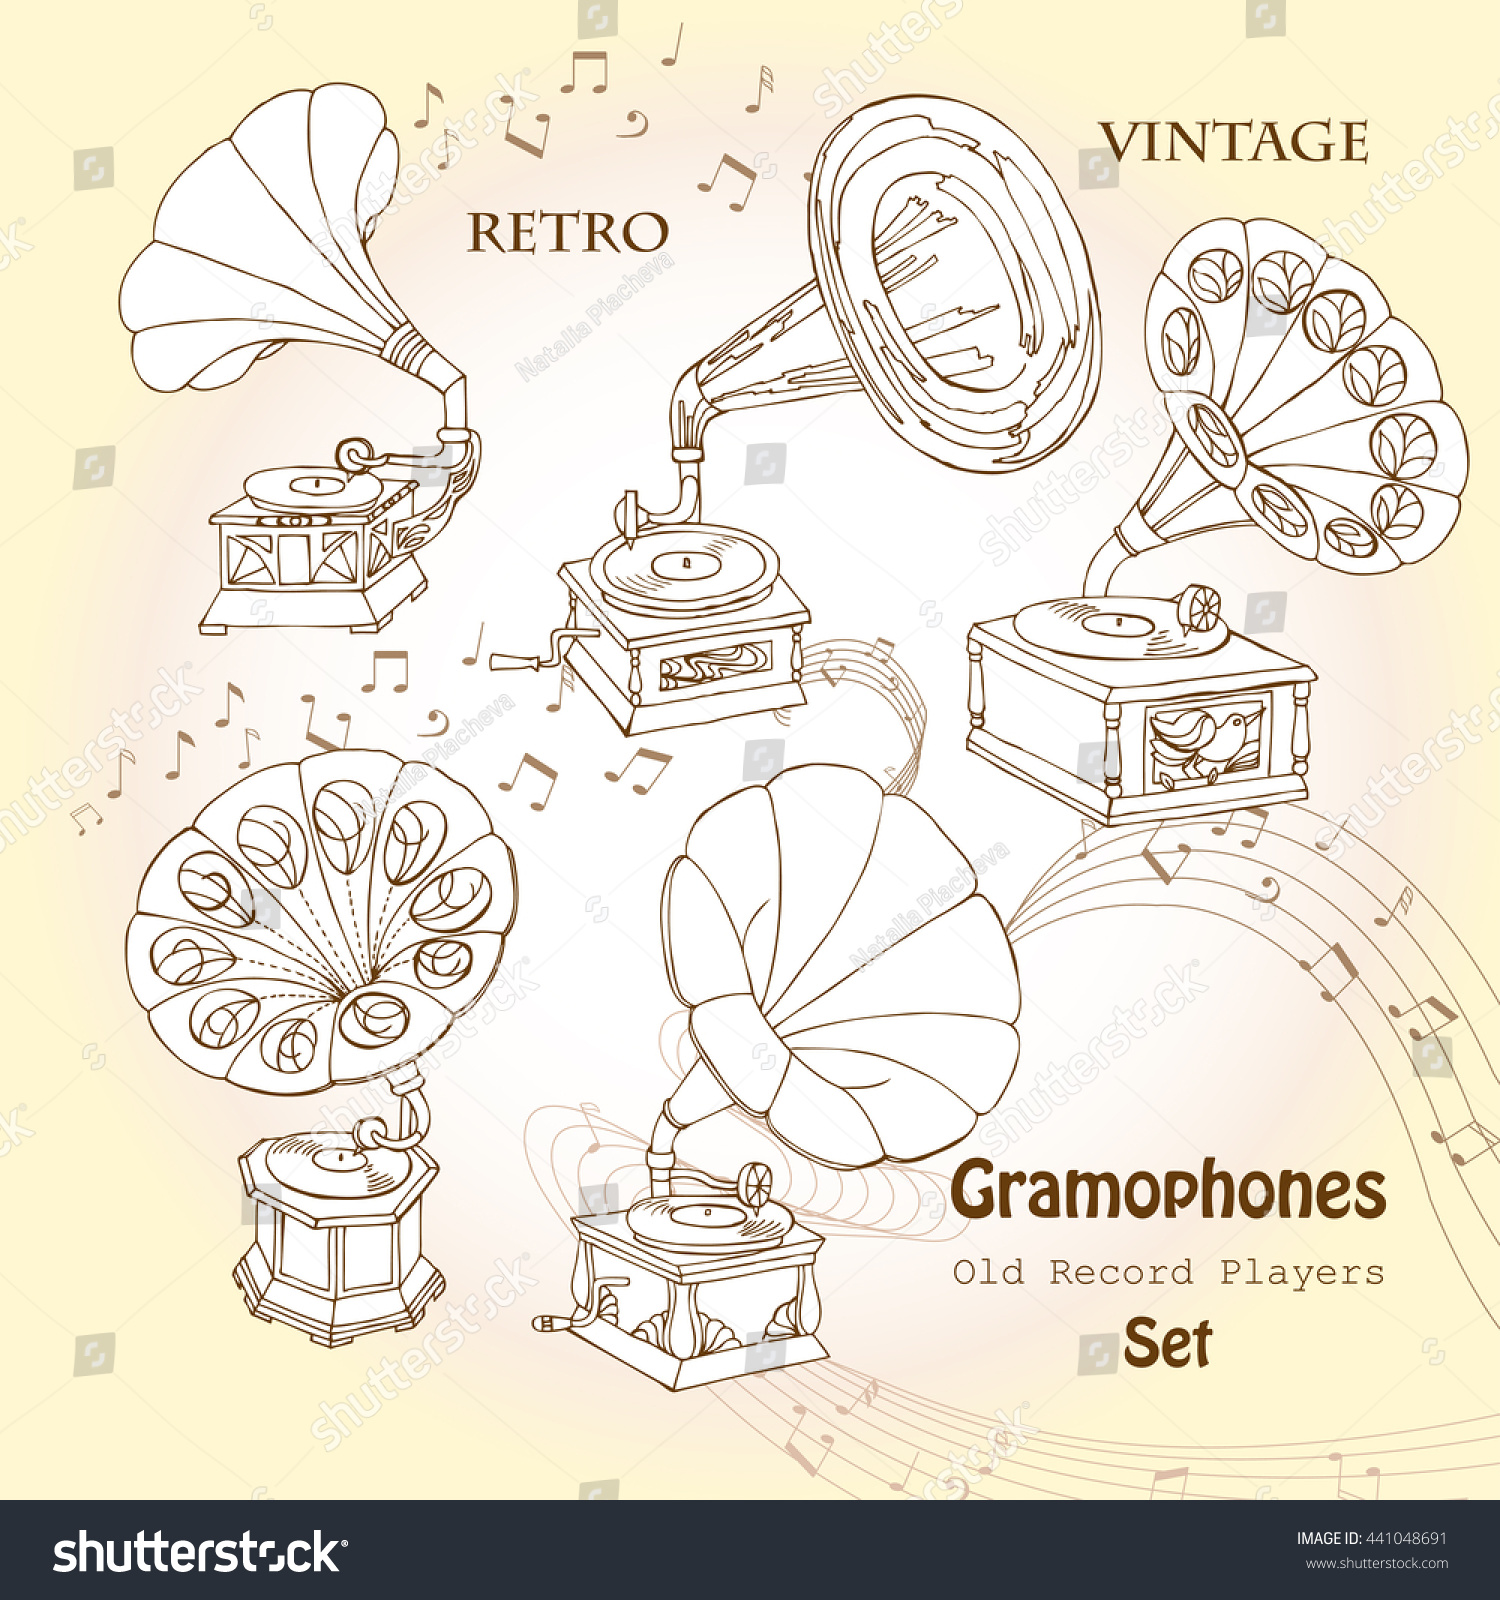 Hand drawn sketches old record player music illustration